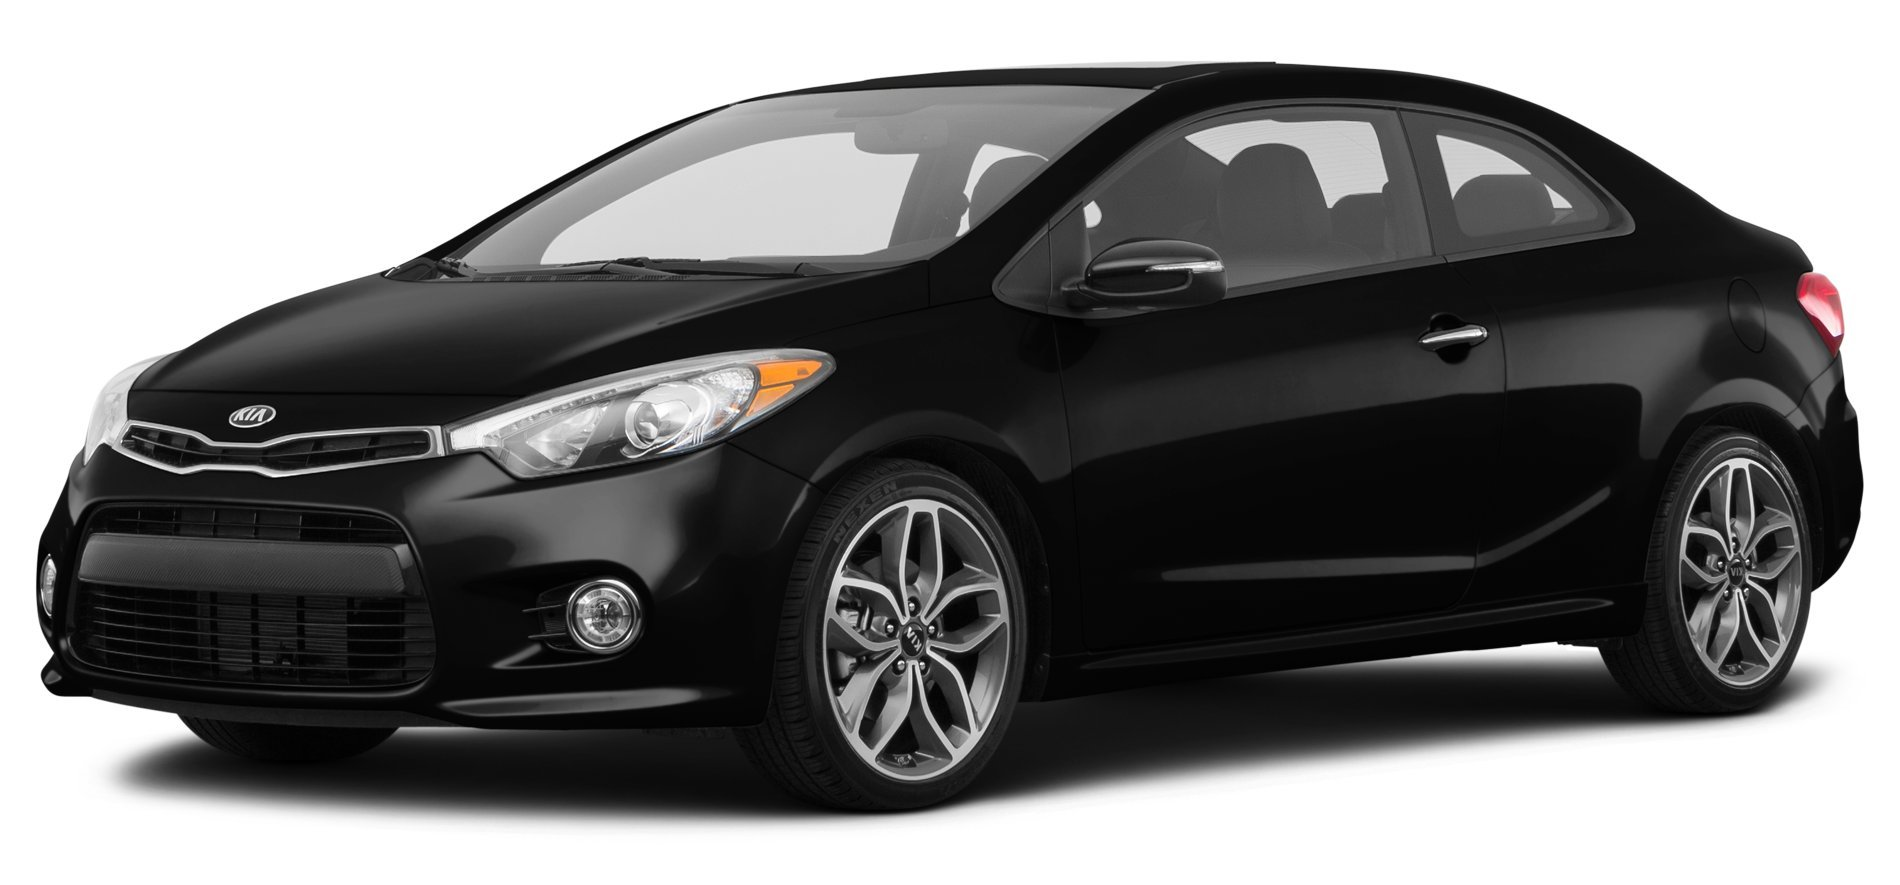 2016 honda accord reviews images and specs vehicles. Black Bedroom Furniture Sets. Home Design Ideas